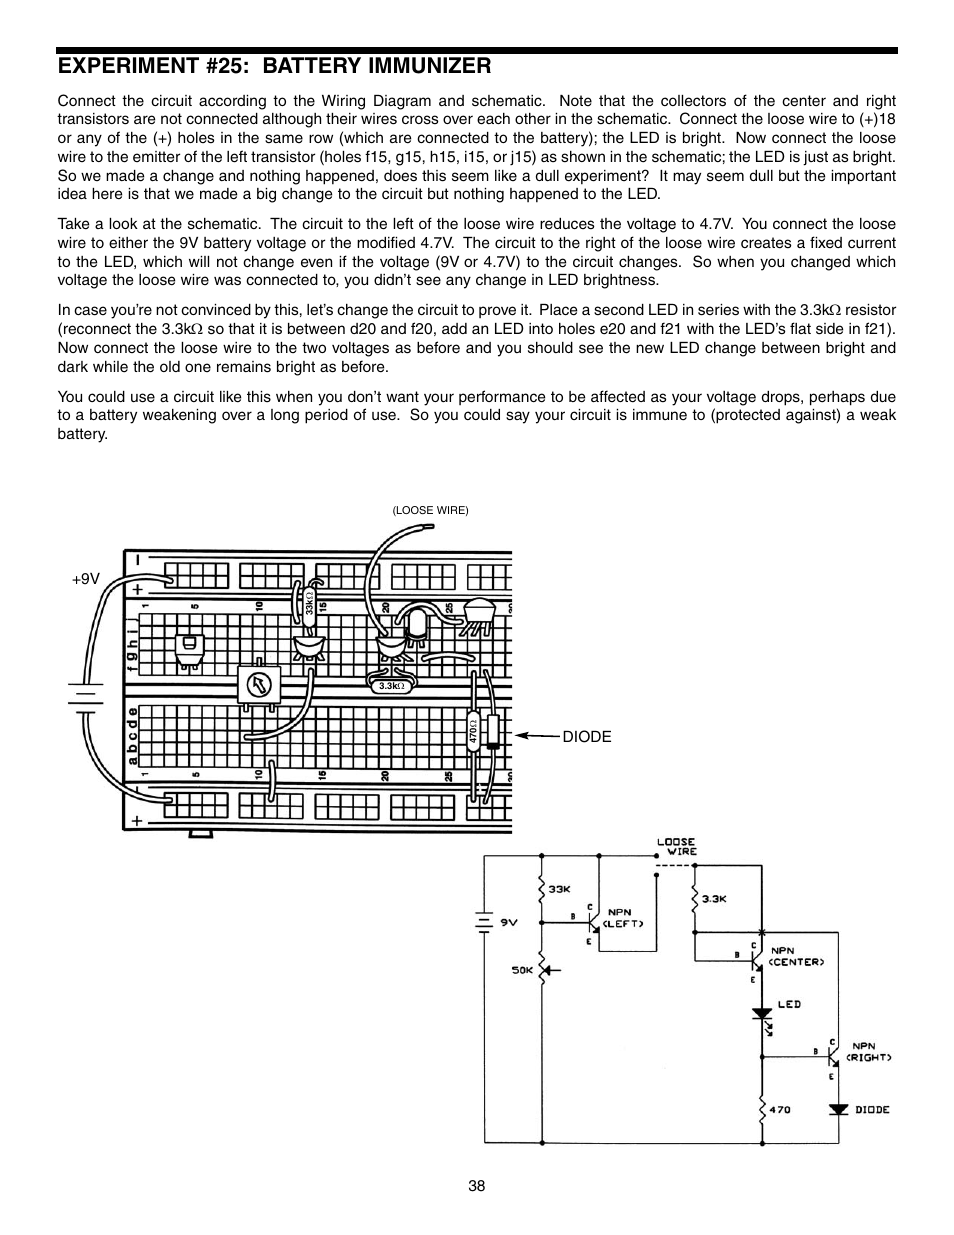 Experiment #25: battery immunizer | Elenco Basic Electronic Experiments User  Manual | Page 38 / 72